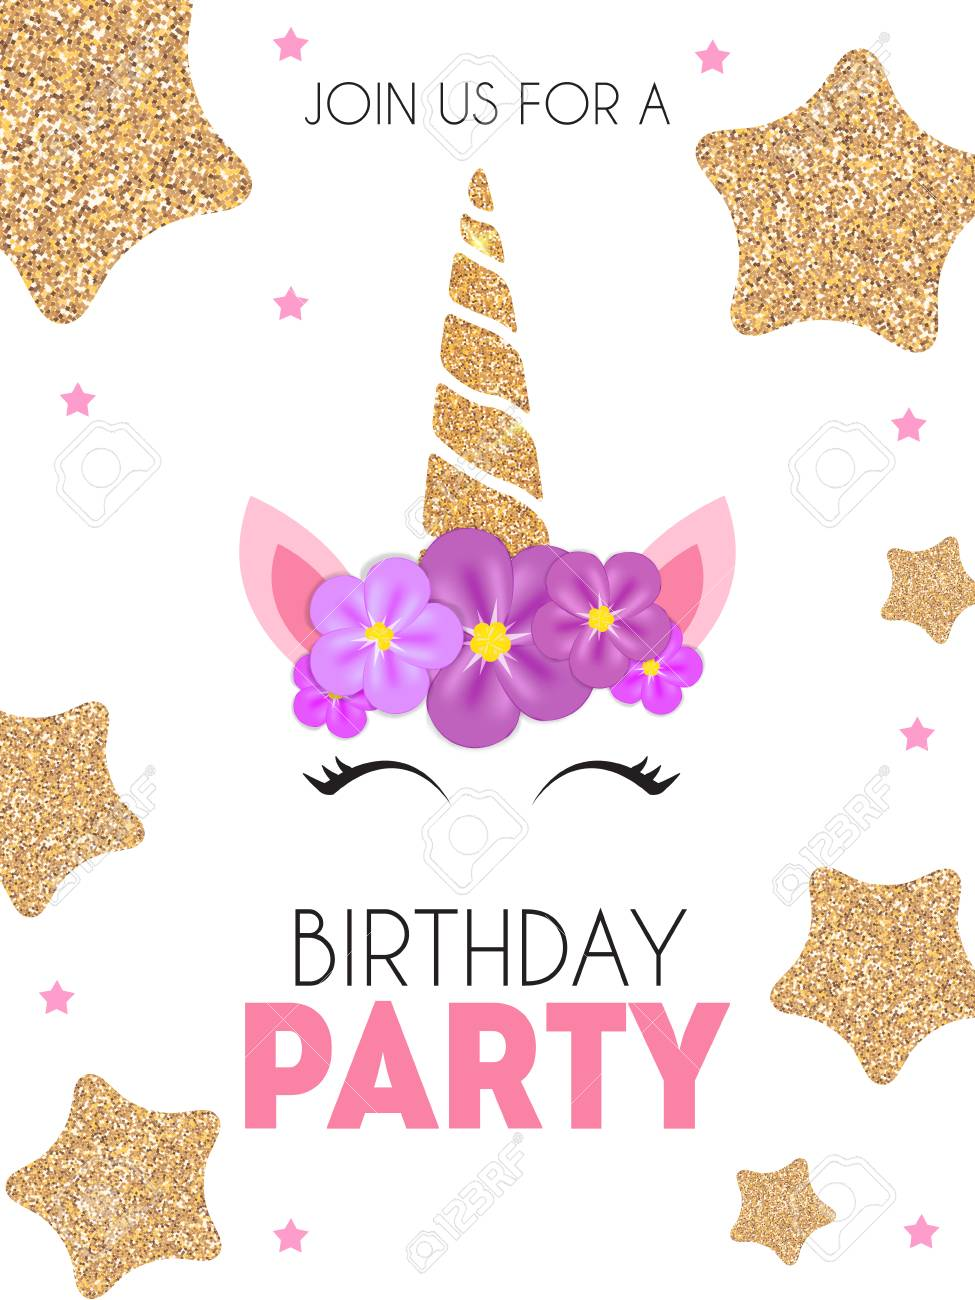 Birthday Party Invitation With Cute Unicorn And Flower Vector